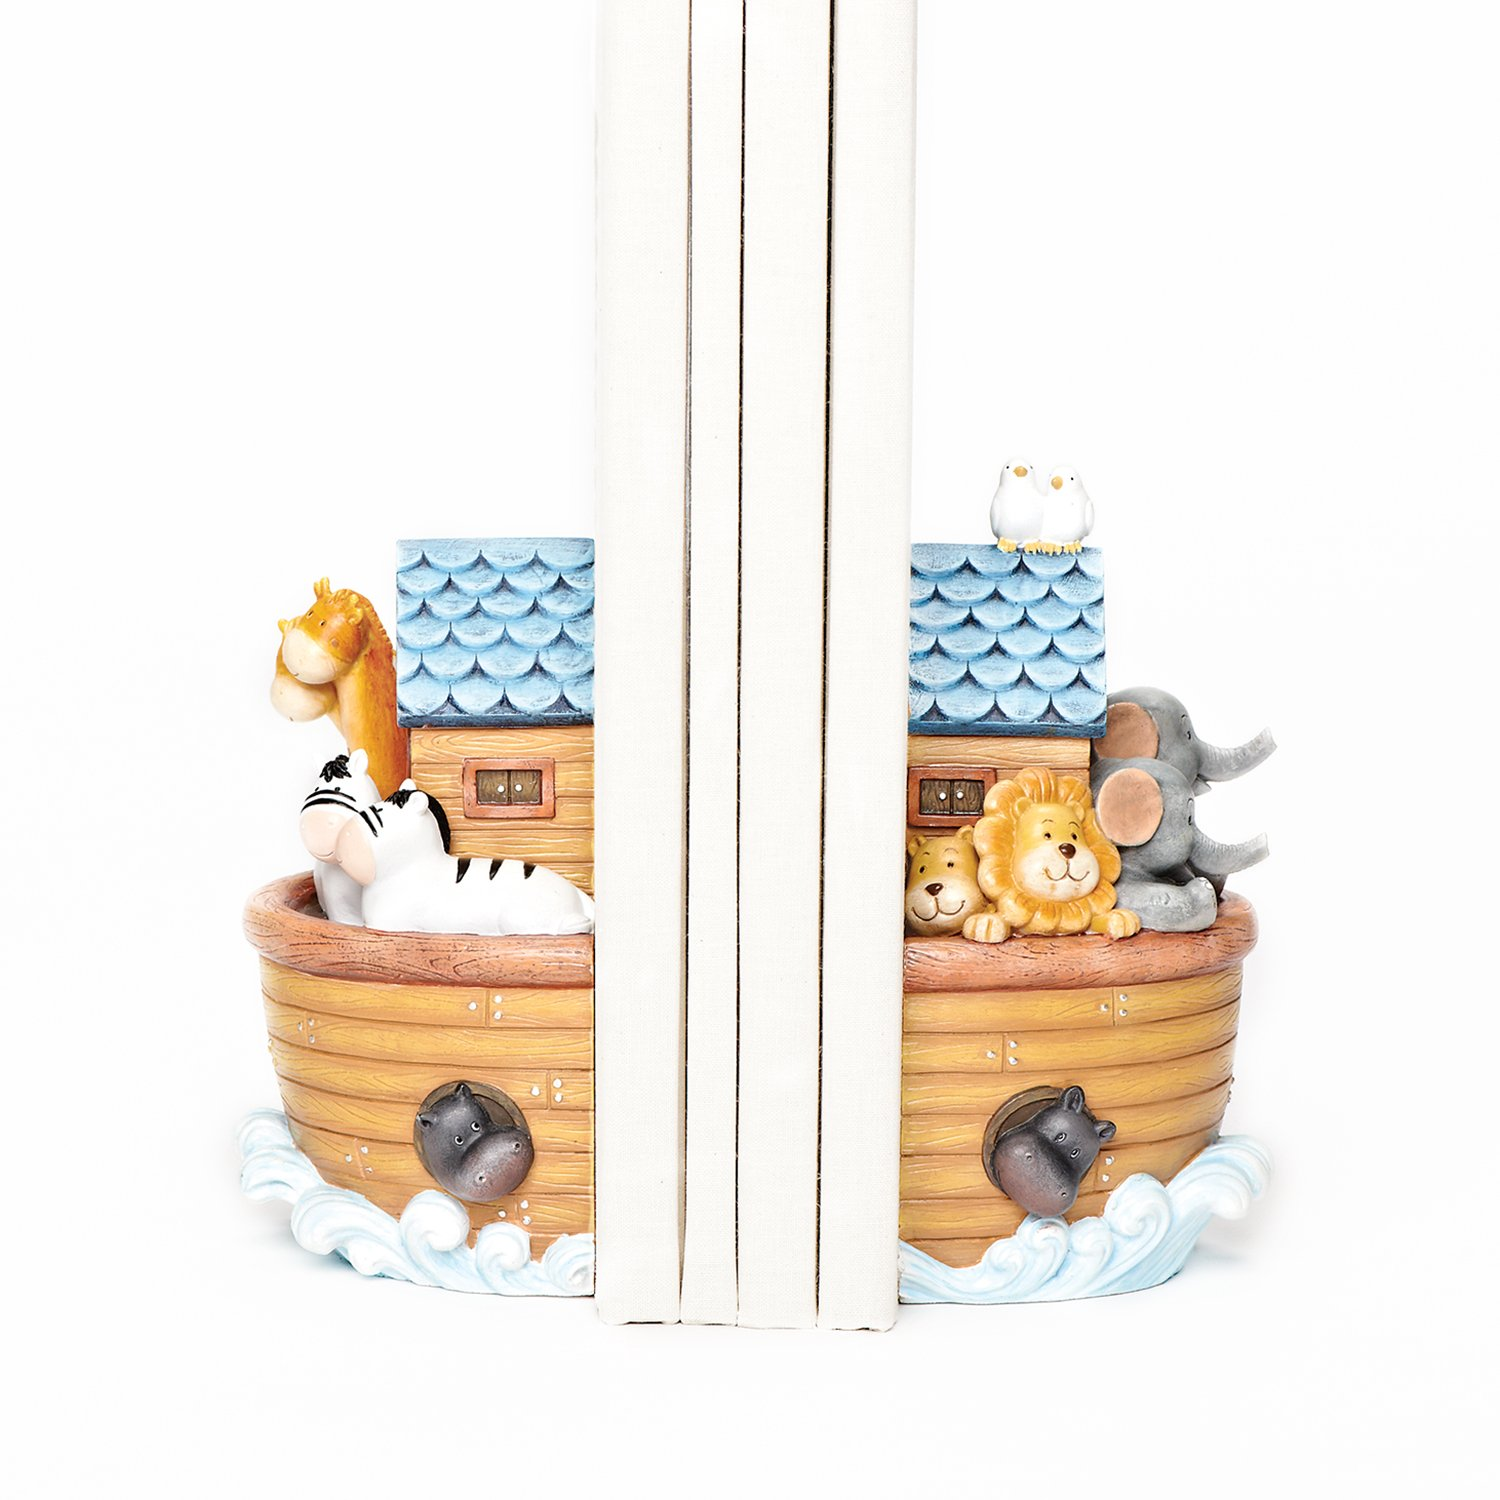 Roman Exclusive Noah's Ark Bookends Showing All The Animals on Board The Ark, 6.5-Inch Tall, Set of 2 Inc. 46406